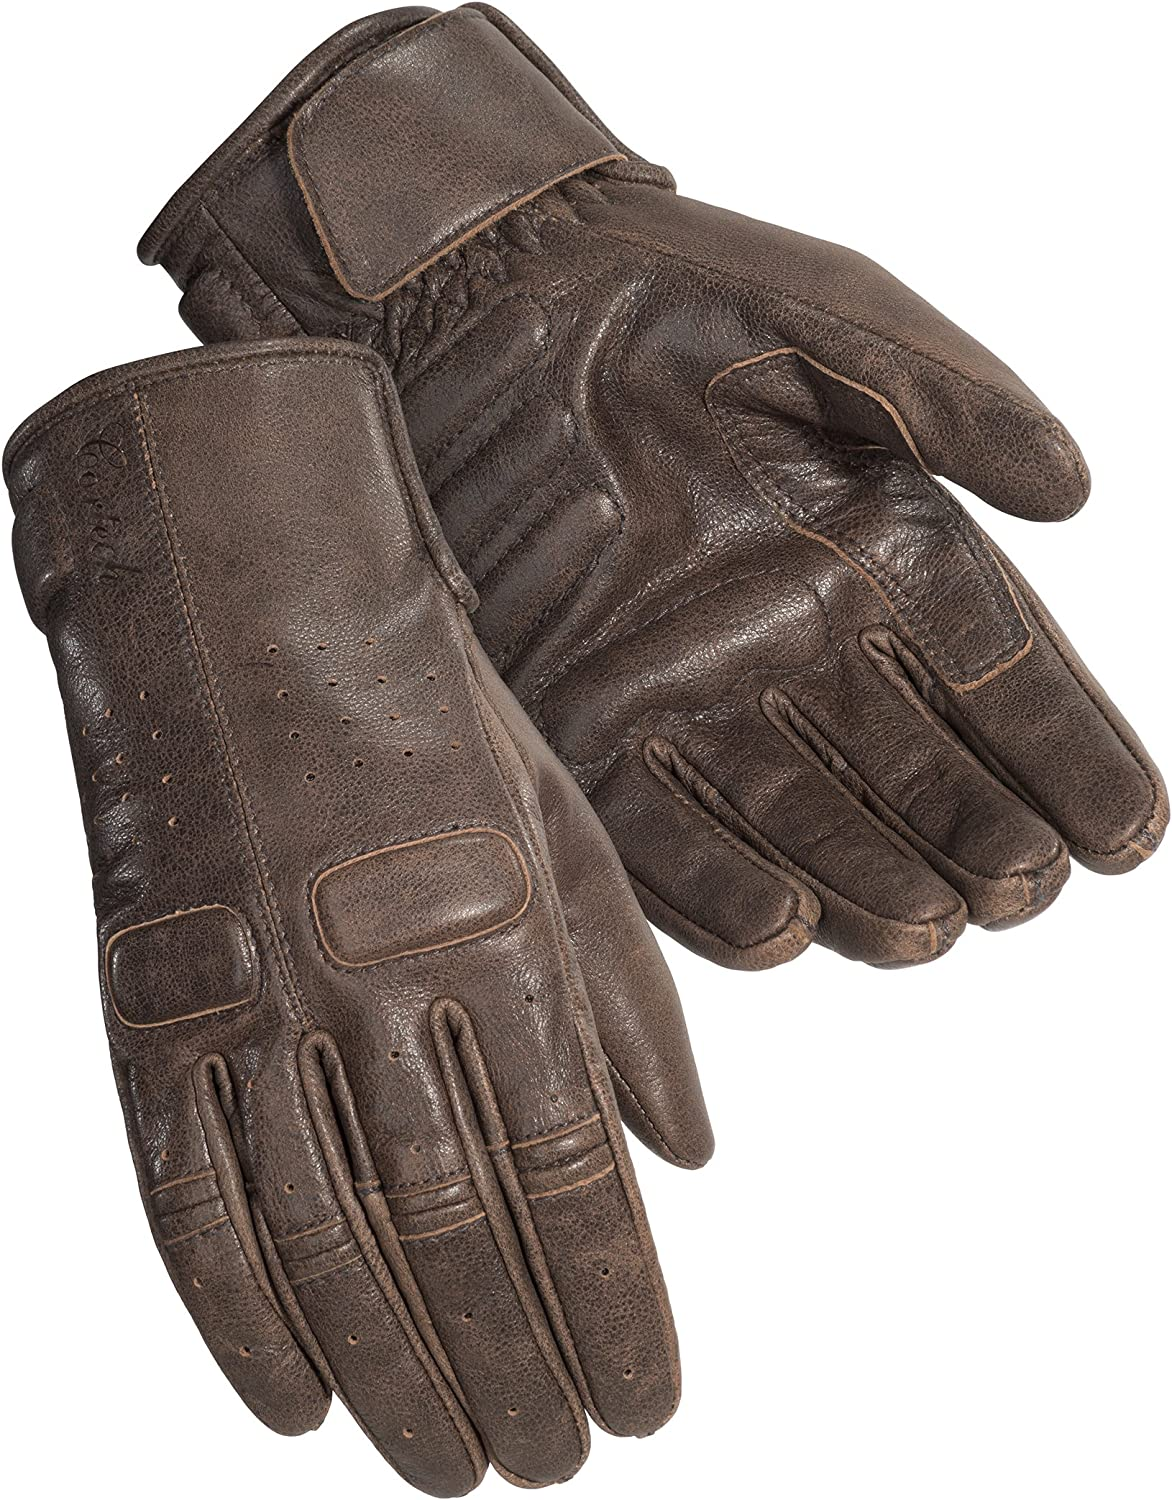 Cortech Womens Café Brown Heckler Leather Motorcycle Gloves